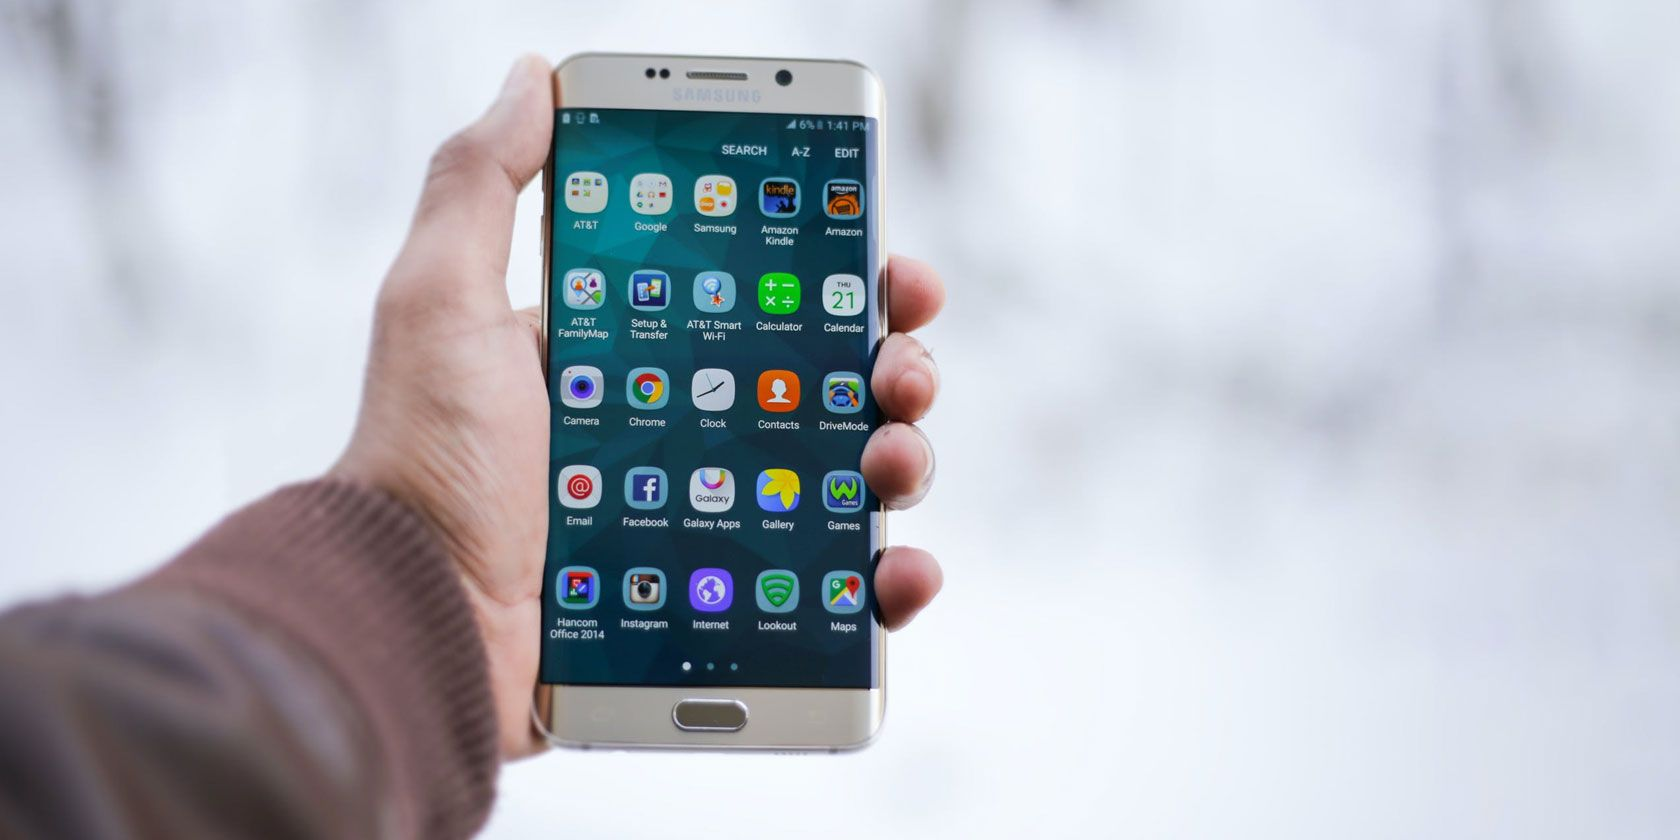 Do More With Your Android Phone: 70+ Tips and Tricks You Should Know